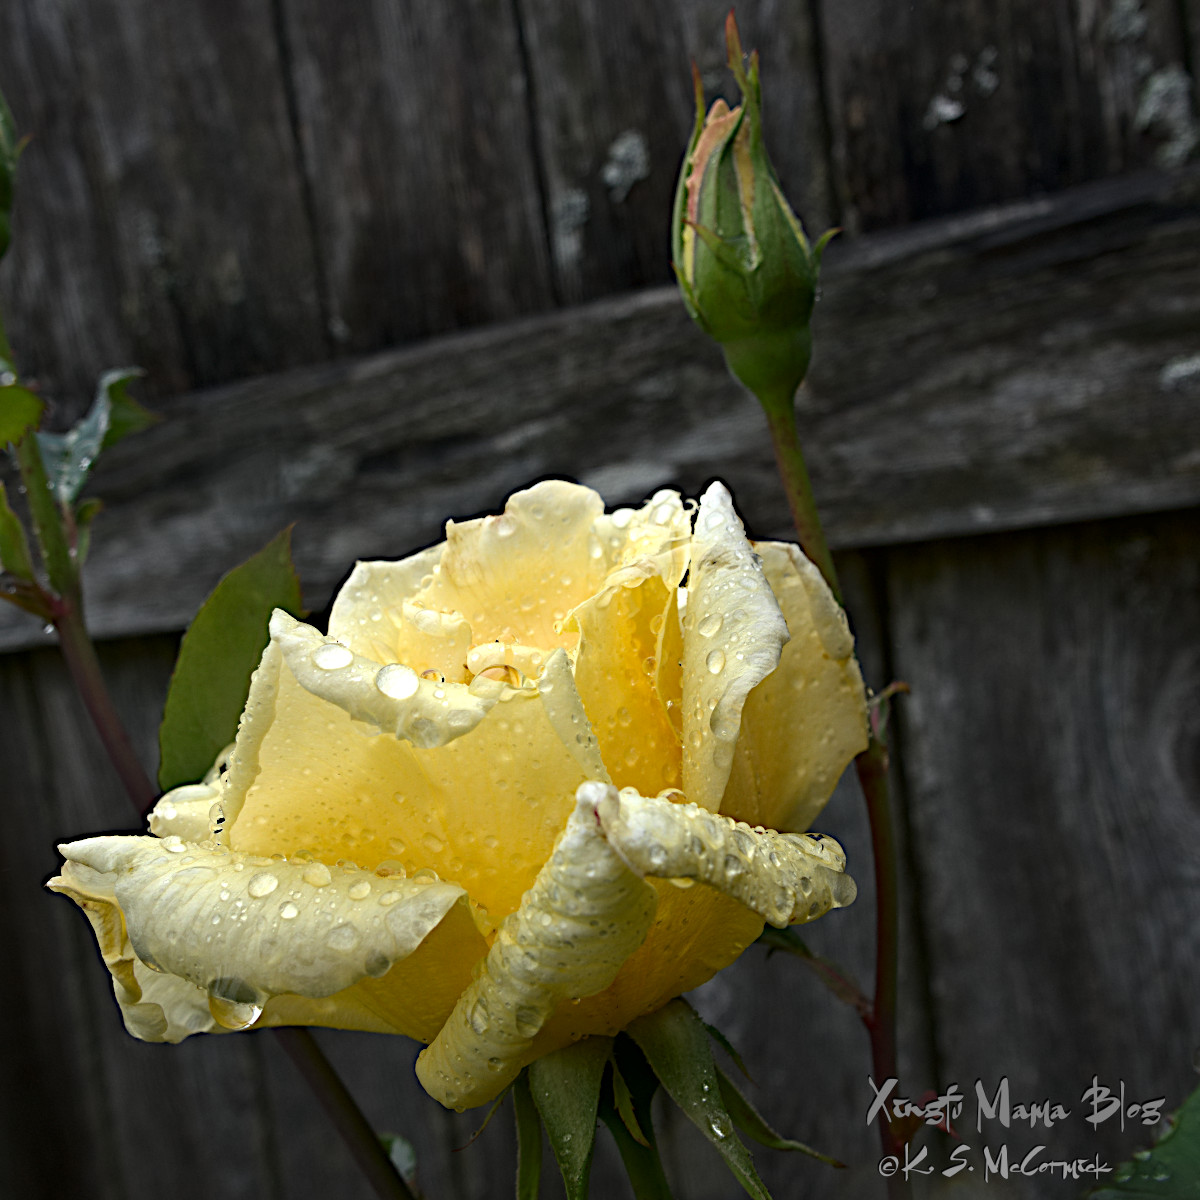 A yellow rose covered with raindrops.